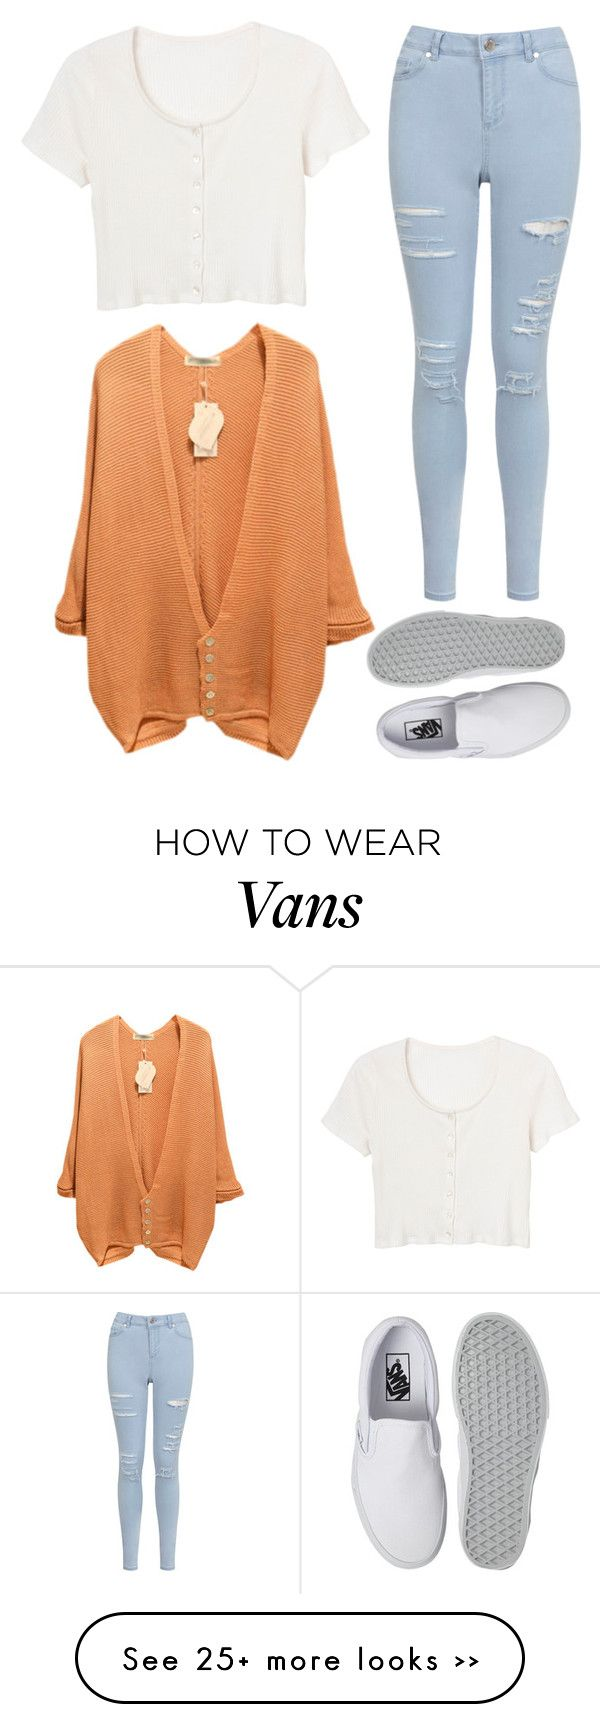 """untitled #72"" by clothesaremythang on Polyvore"